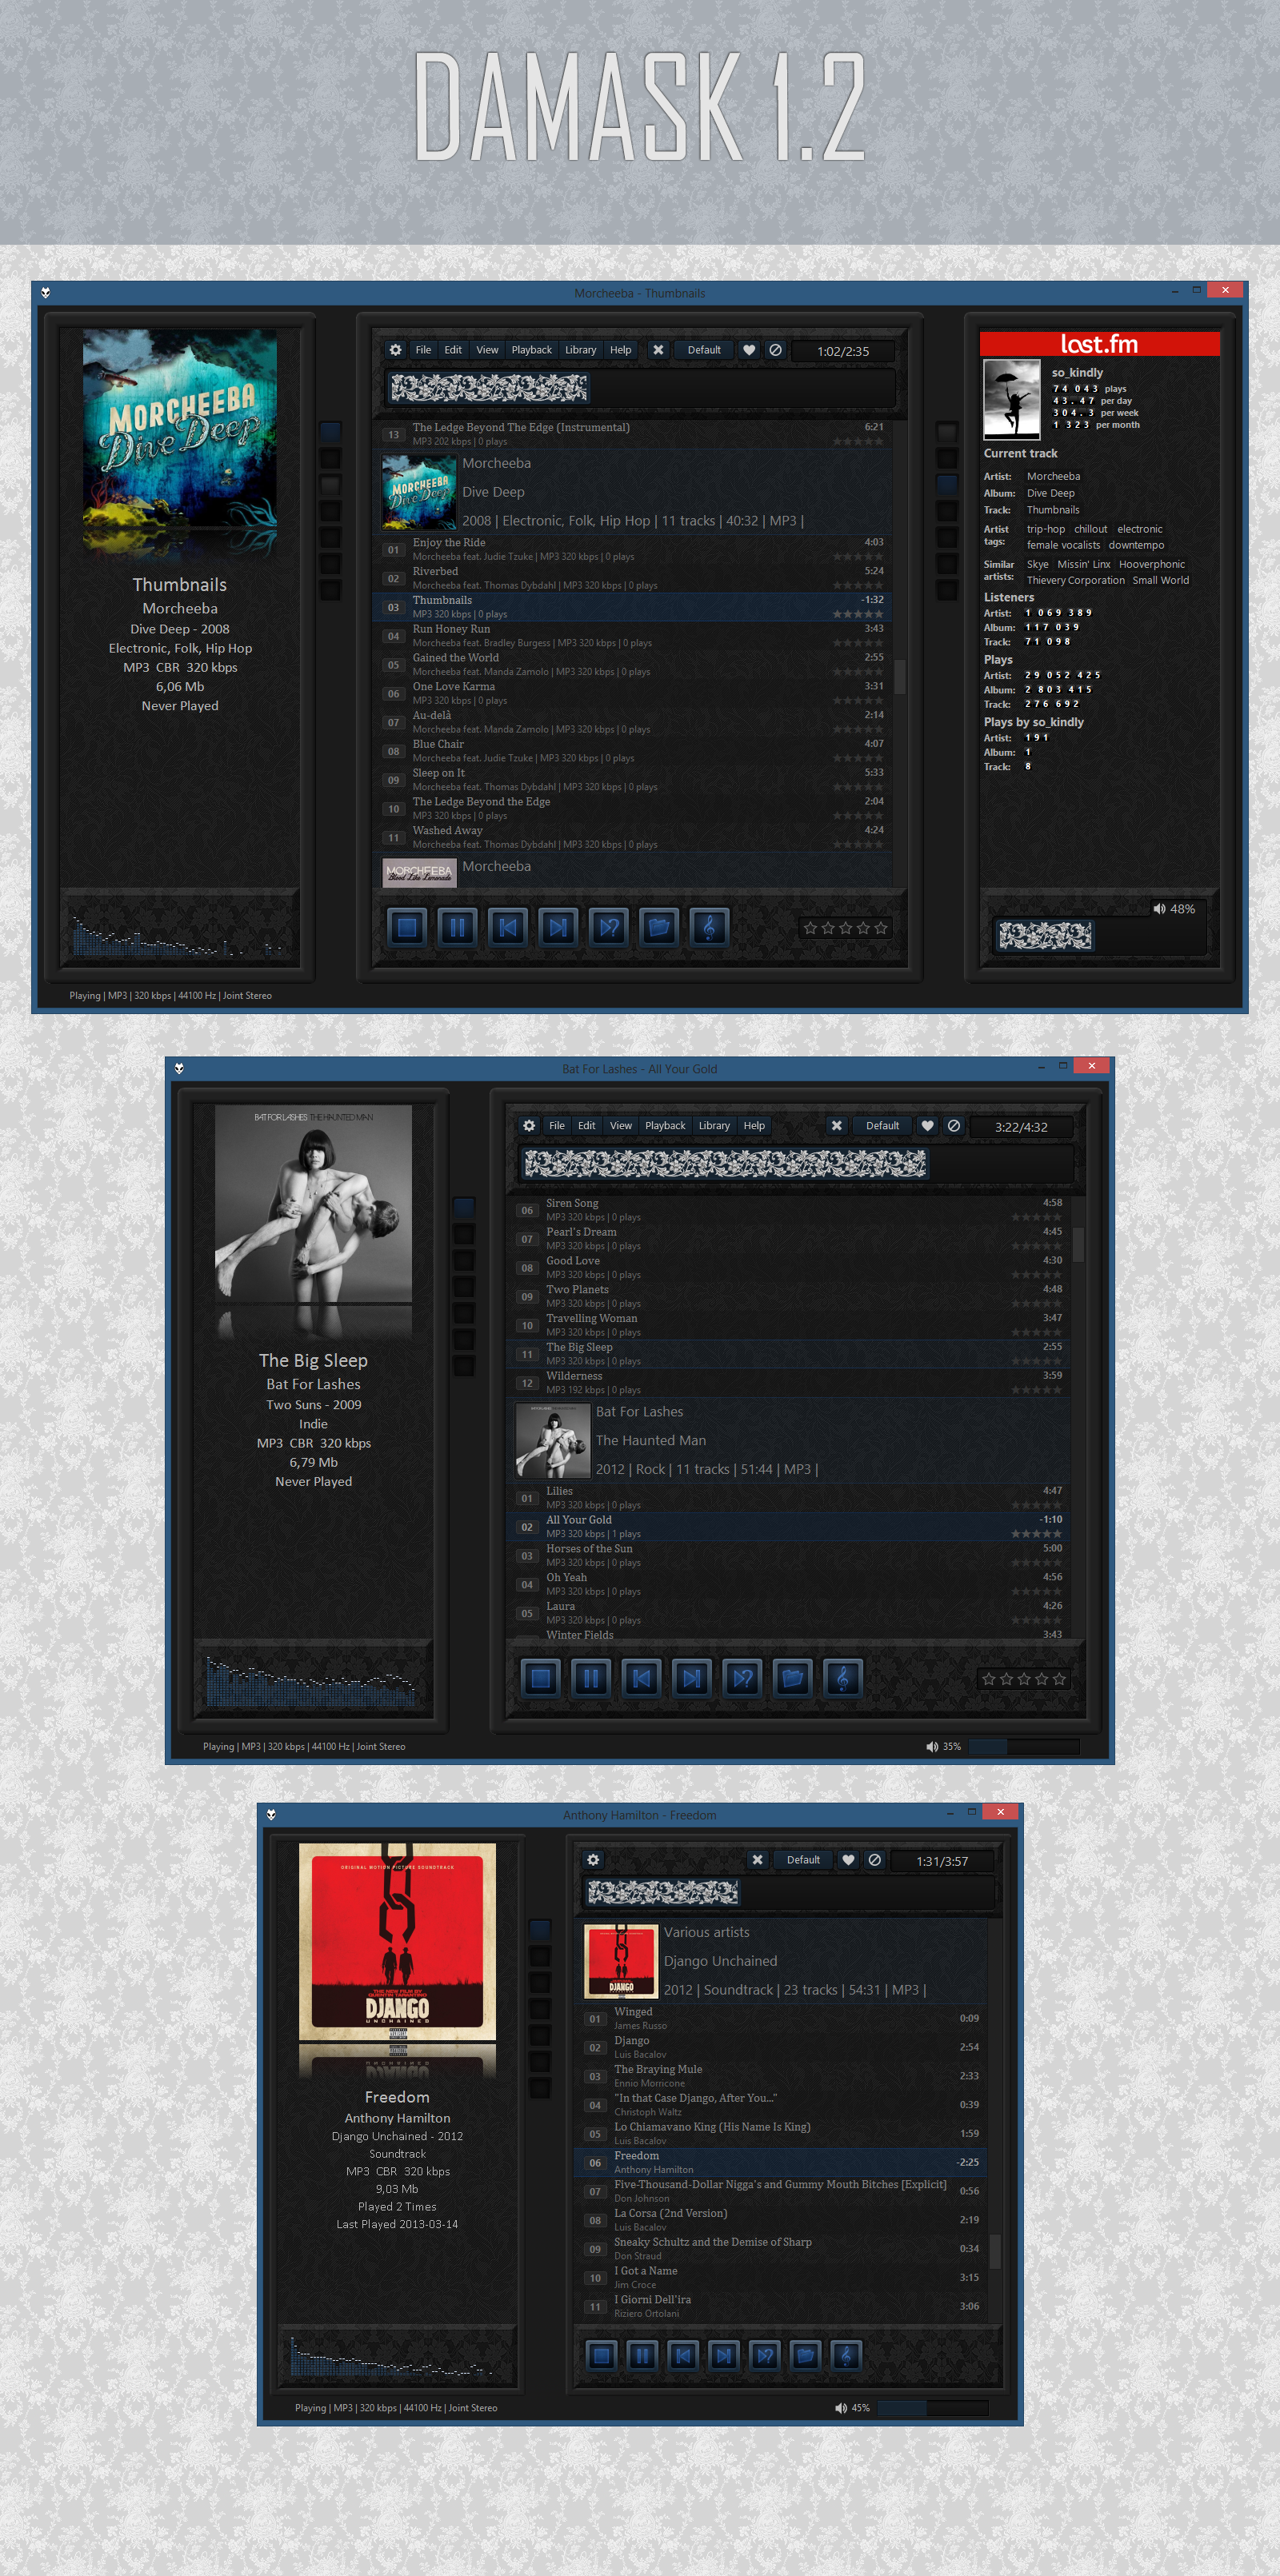 foobar2000 Damask 1.2 by so-kindly